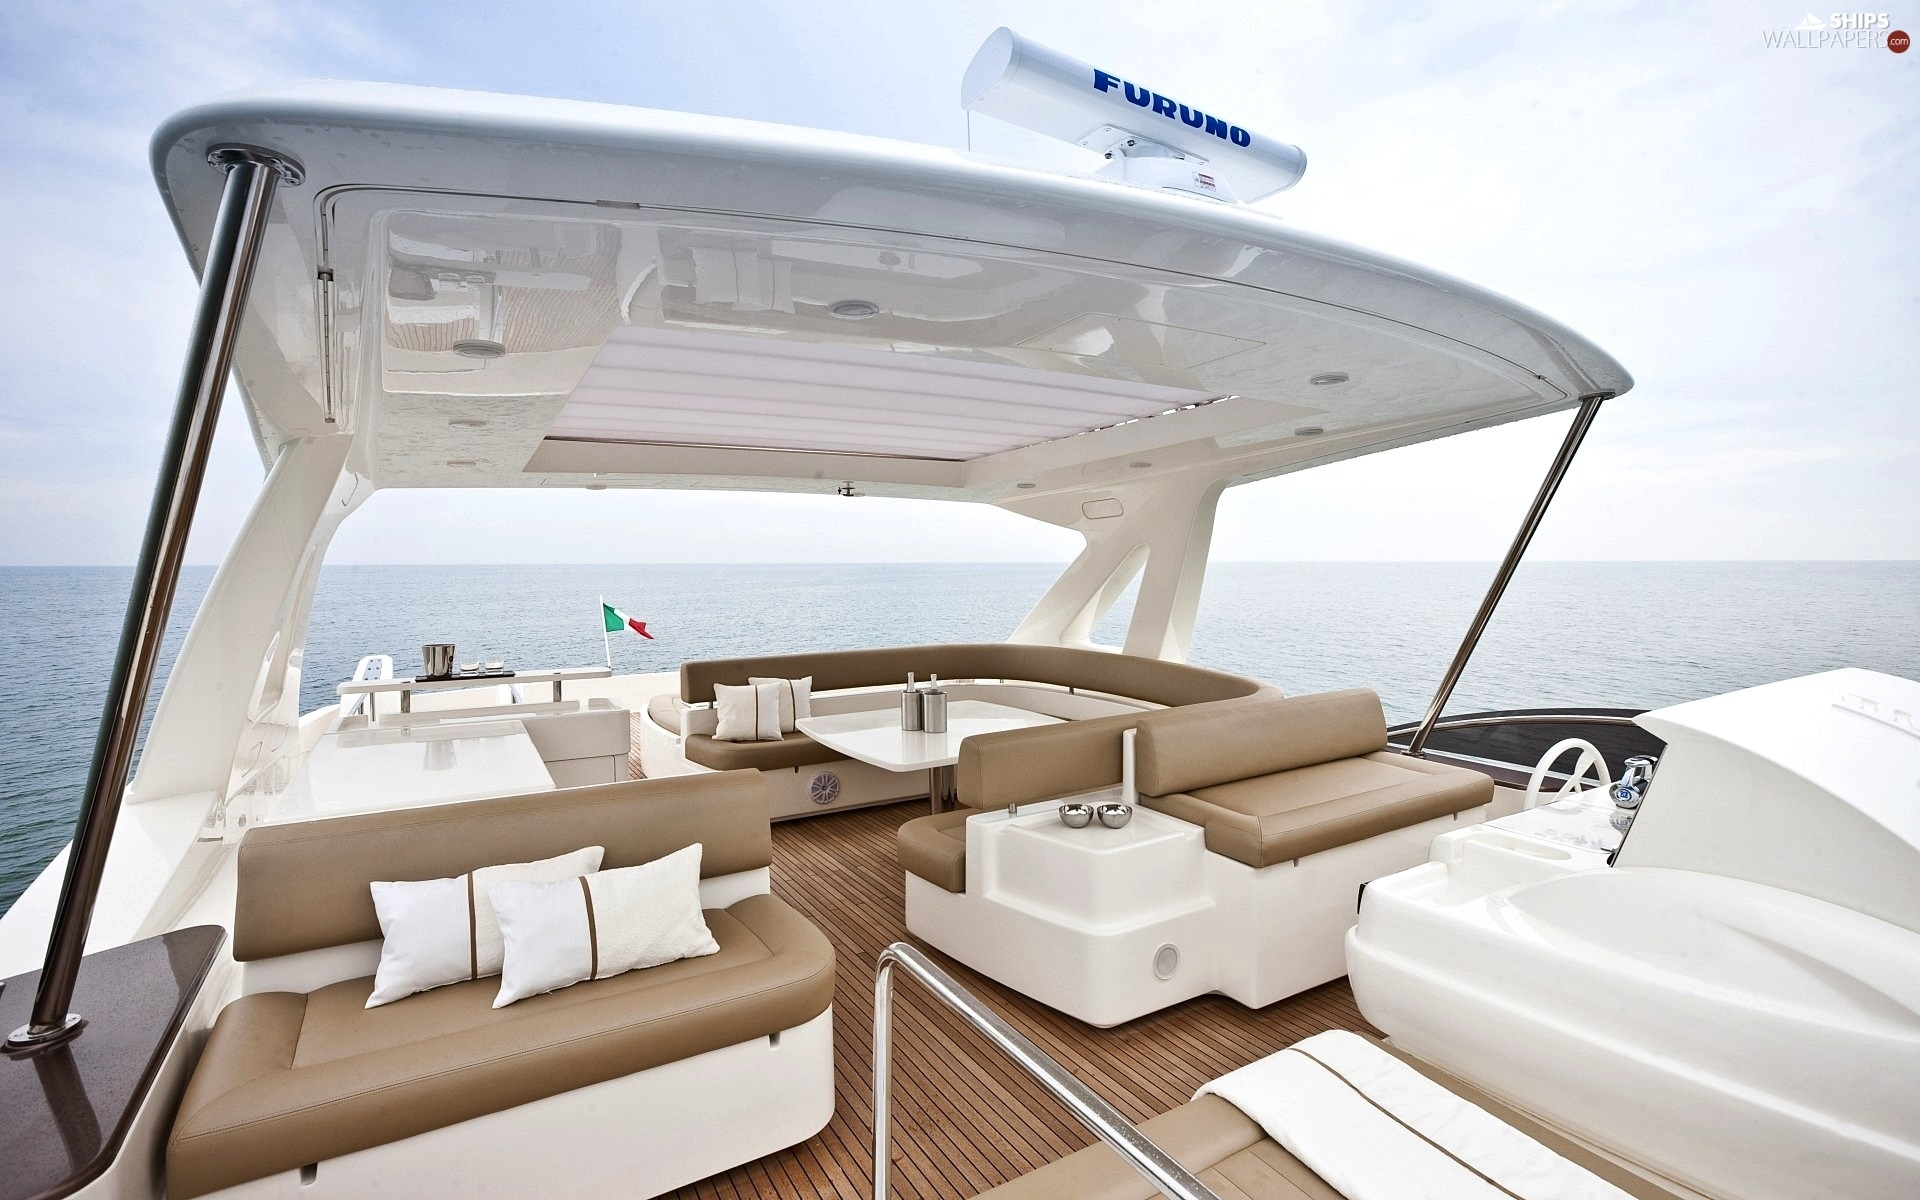 http://wejetlovers.wehomeowners.com/wp-content/uploads/2016/07/Yacht-Photo_002.jpg